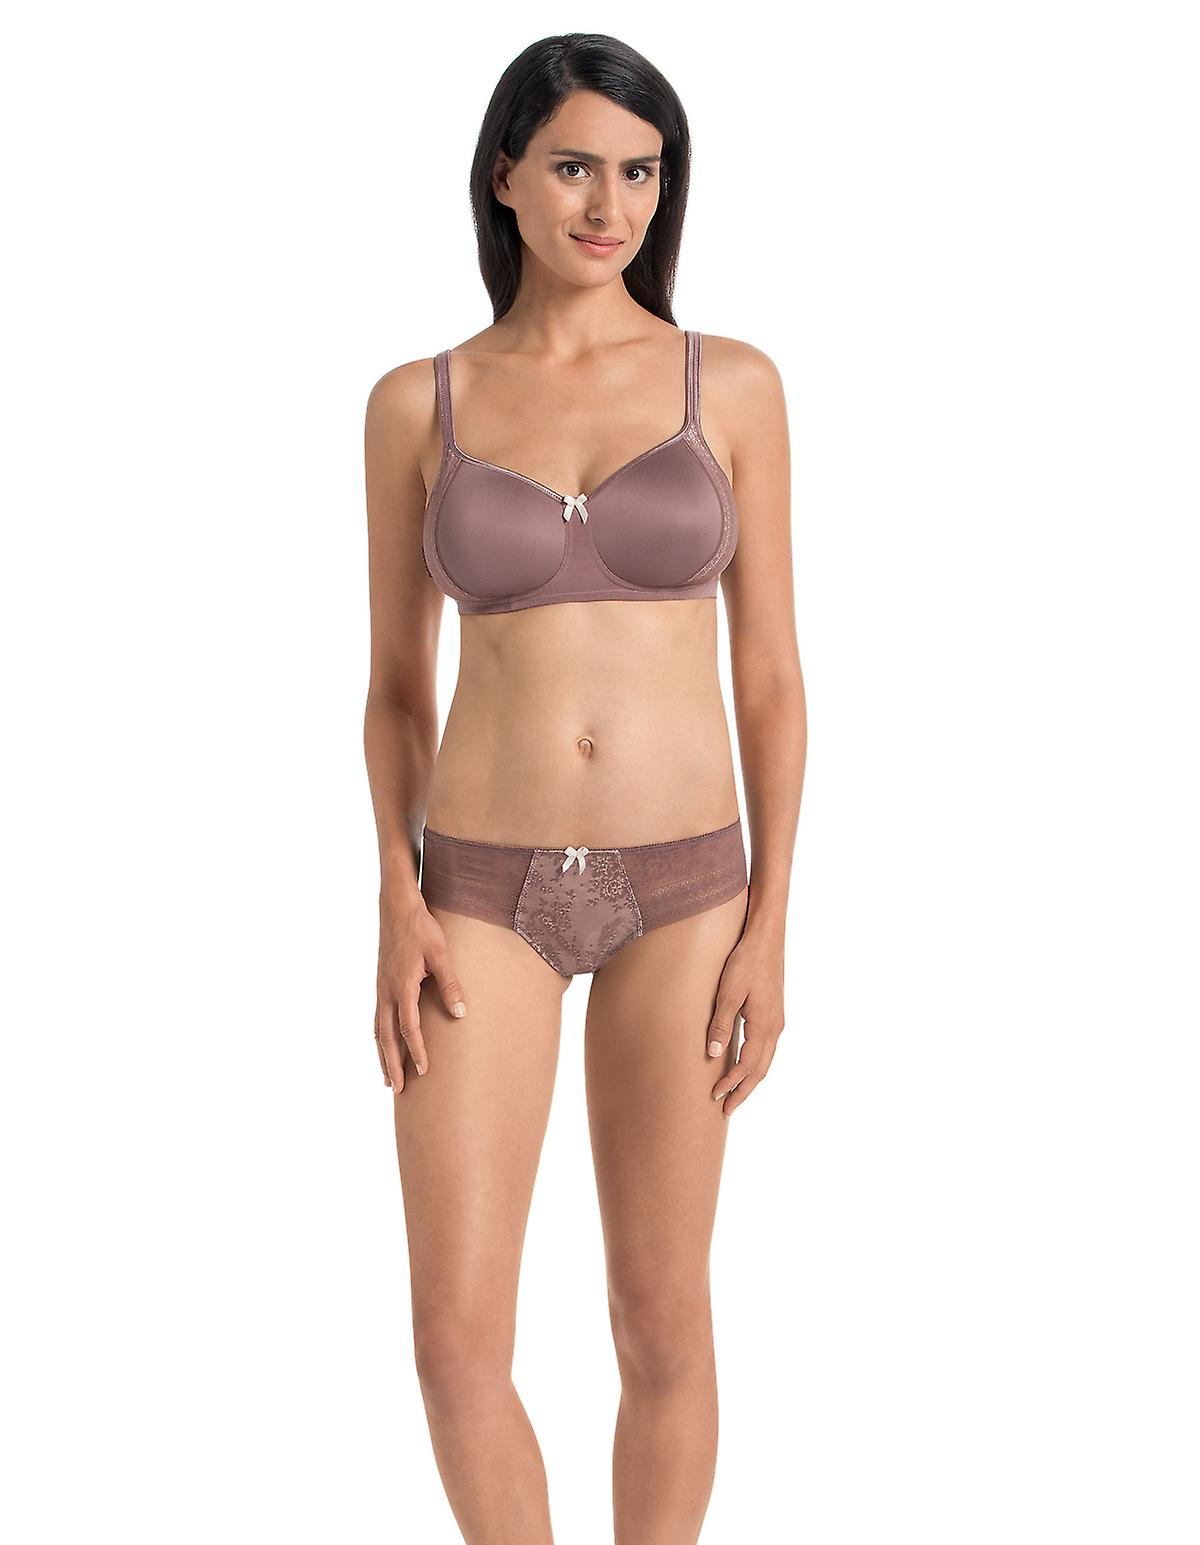 RosaFaia 1354-769 Womens Fleur Berry Pink Floral Lace Panty Thong